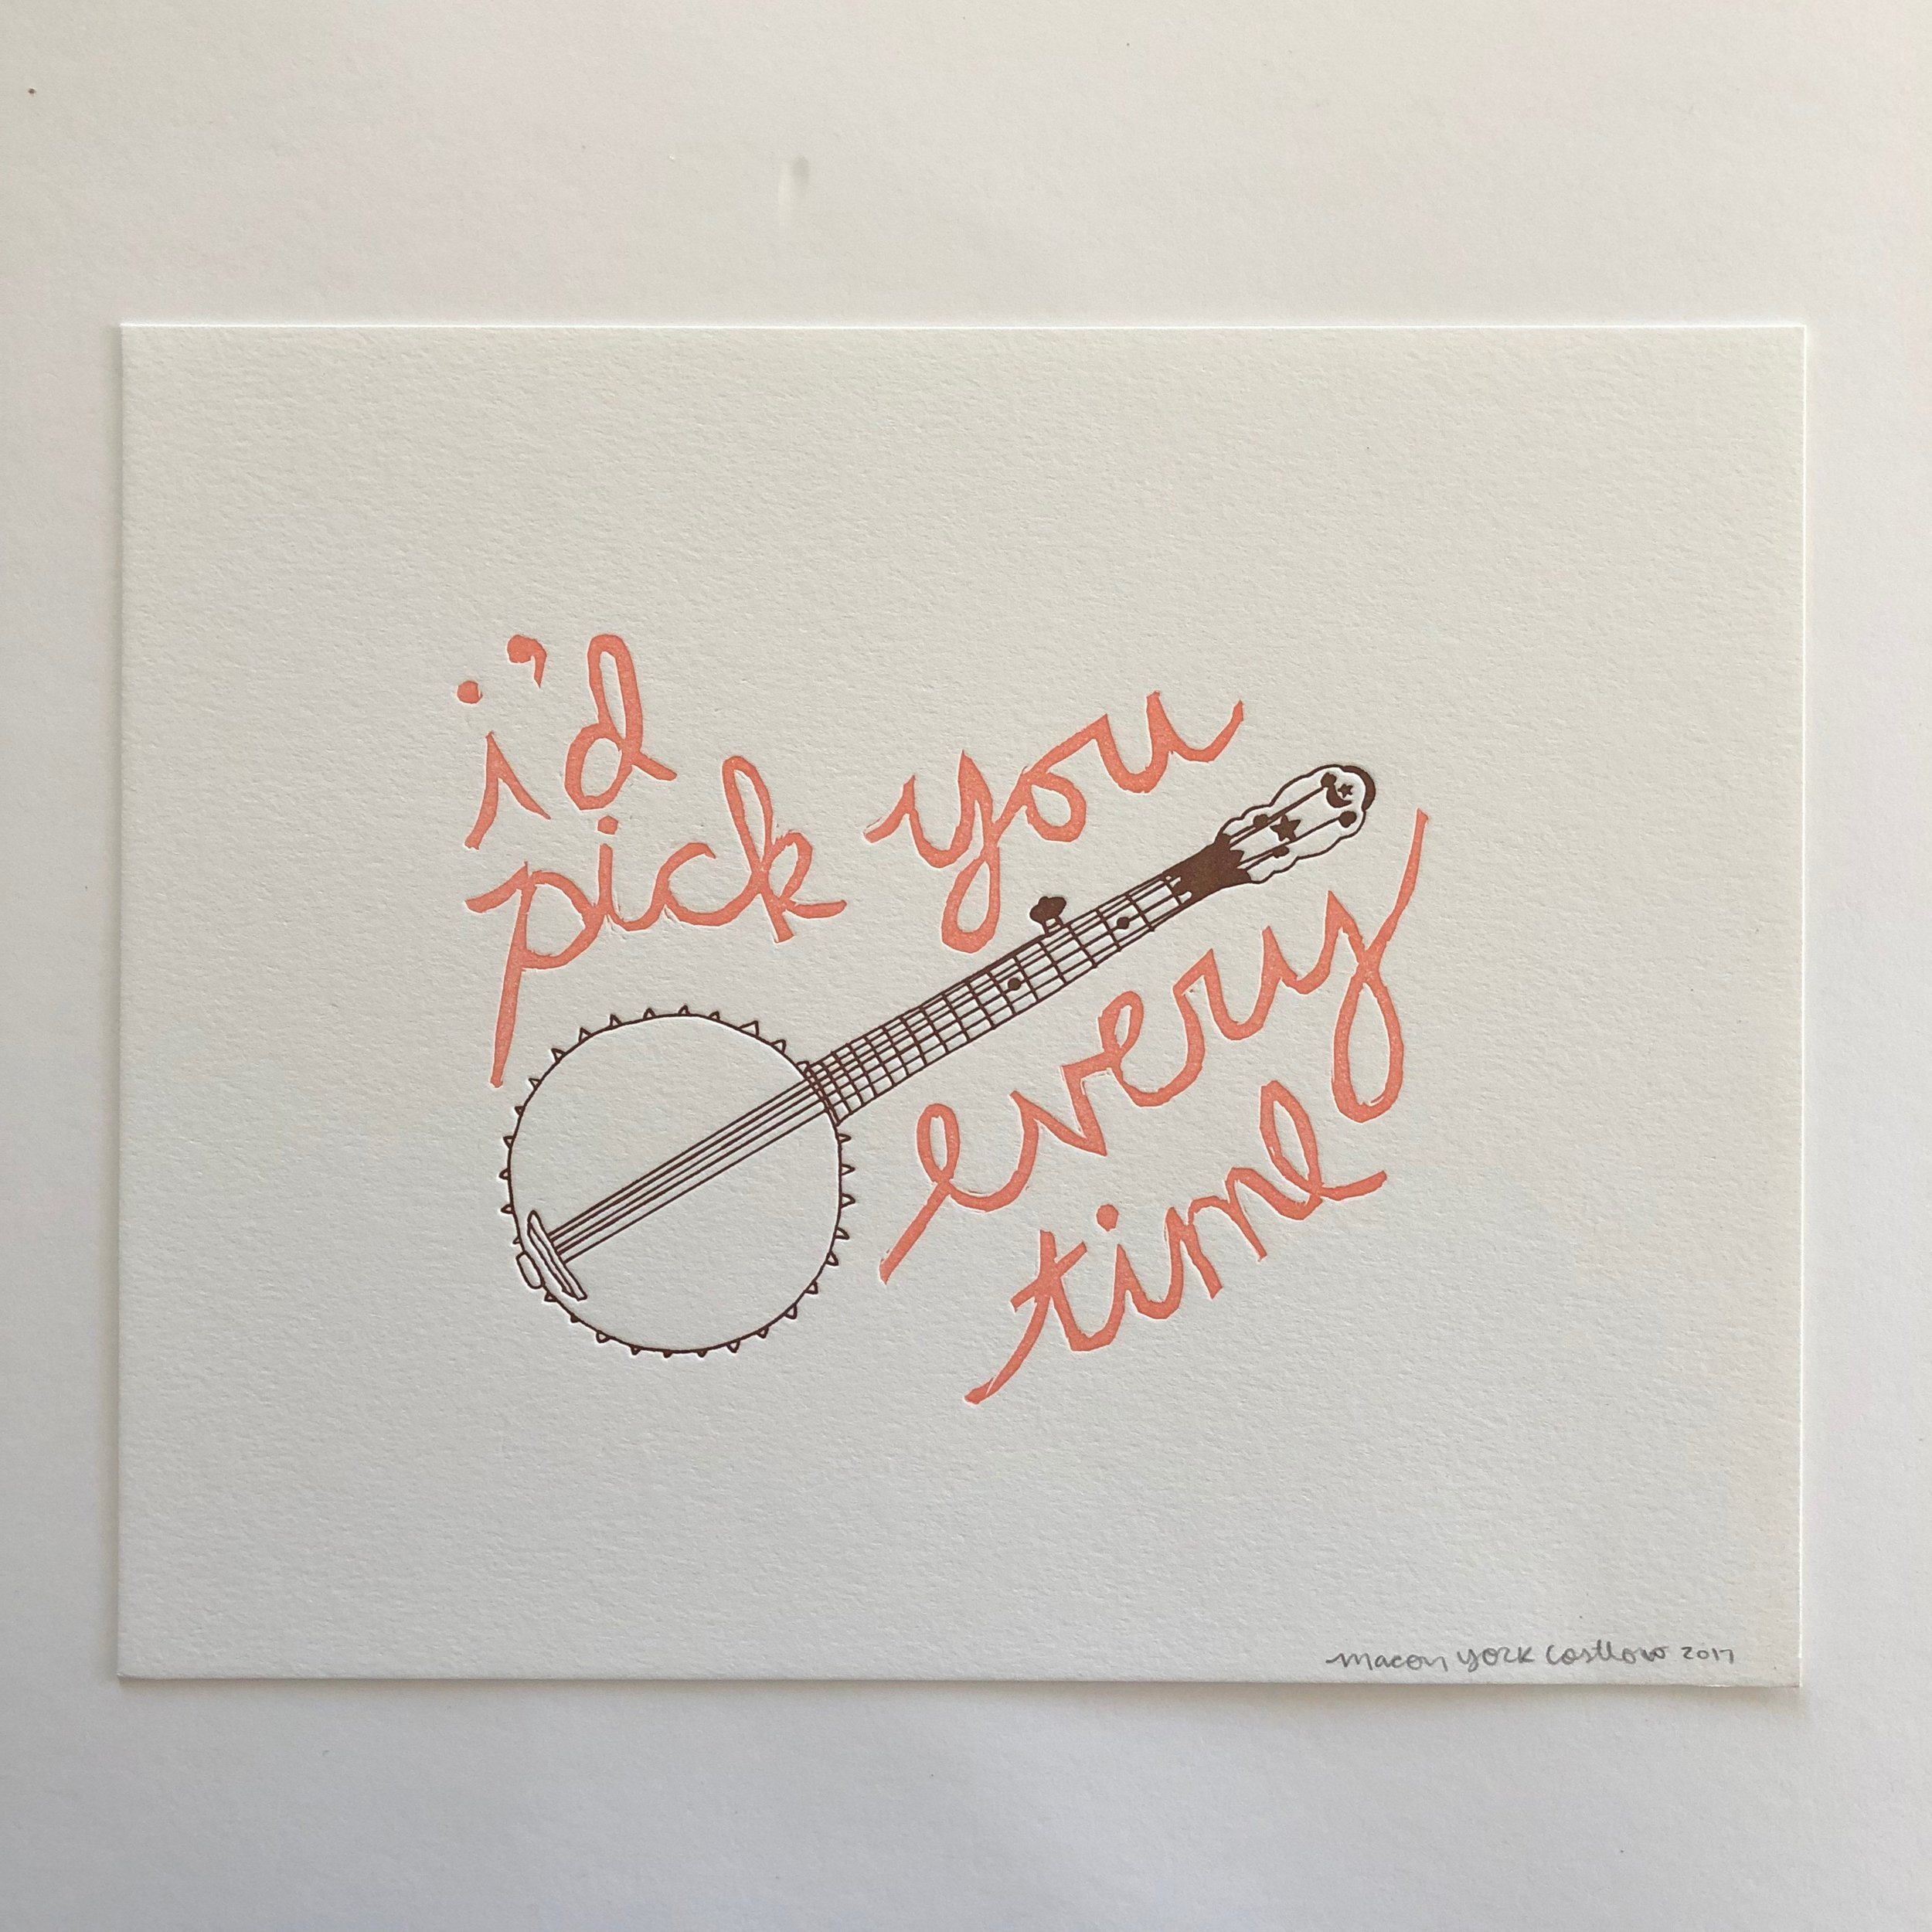 I'D PICK YOU EVERY TIME // BANJO     Who doesn't love a good banjo pun? The text is hand-carved from a linoleum block and the banjo is hand-drawn. Two color print: peach and brown.